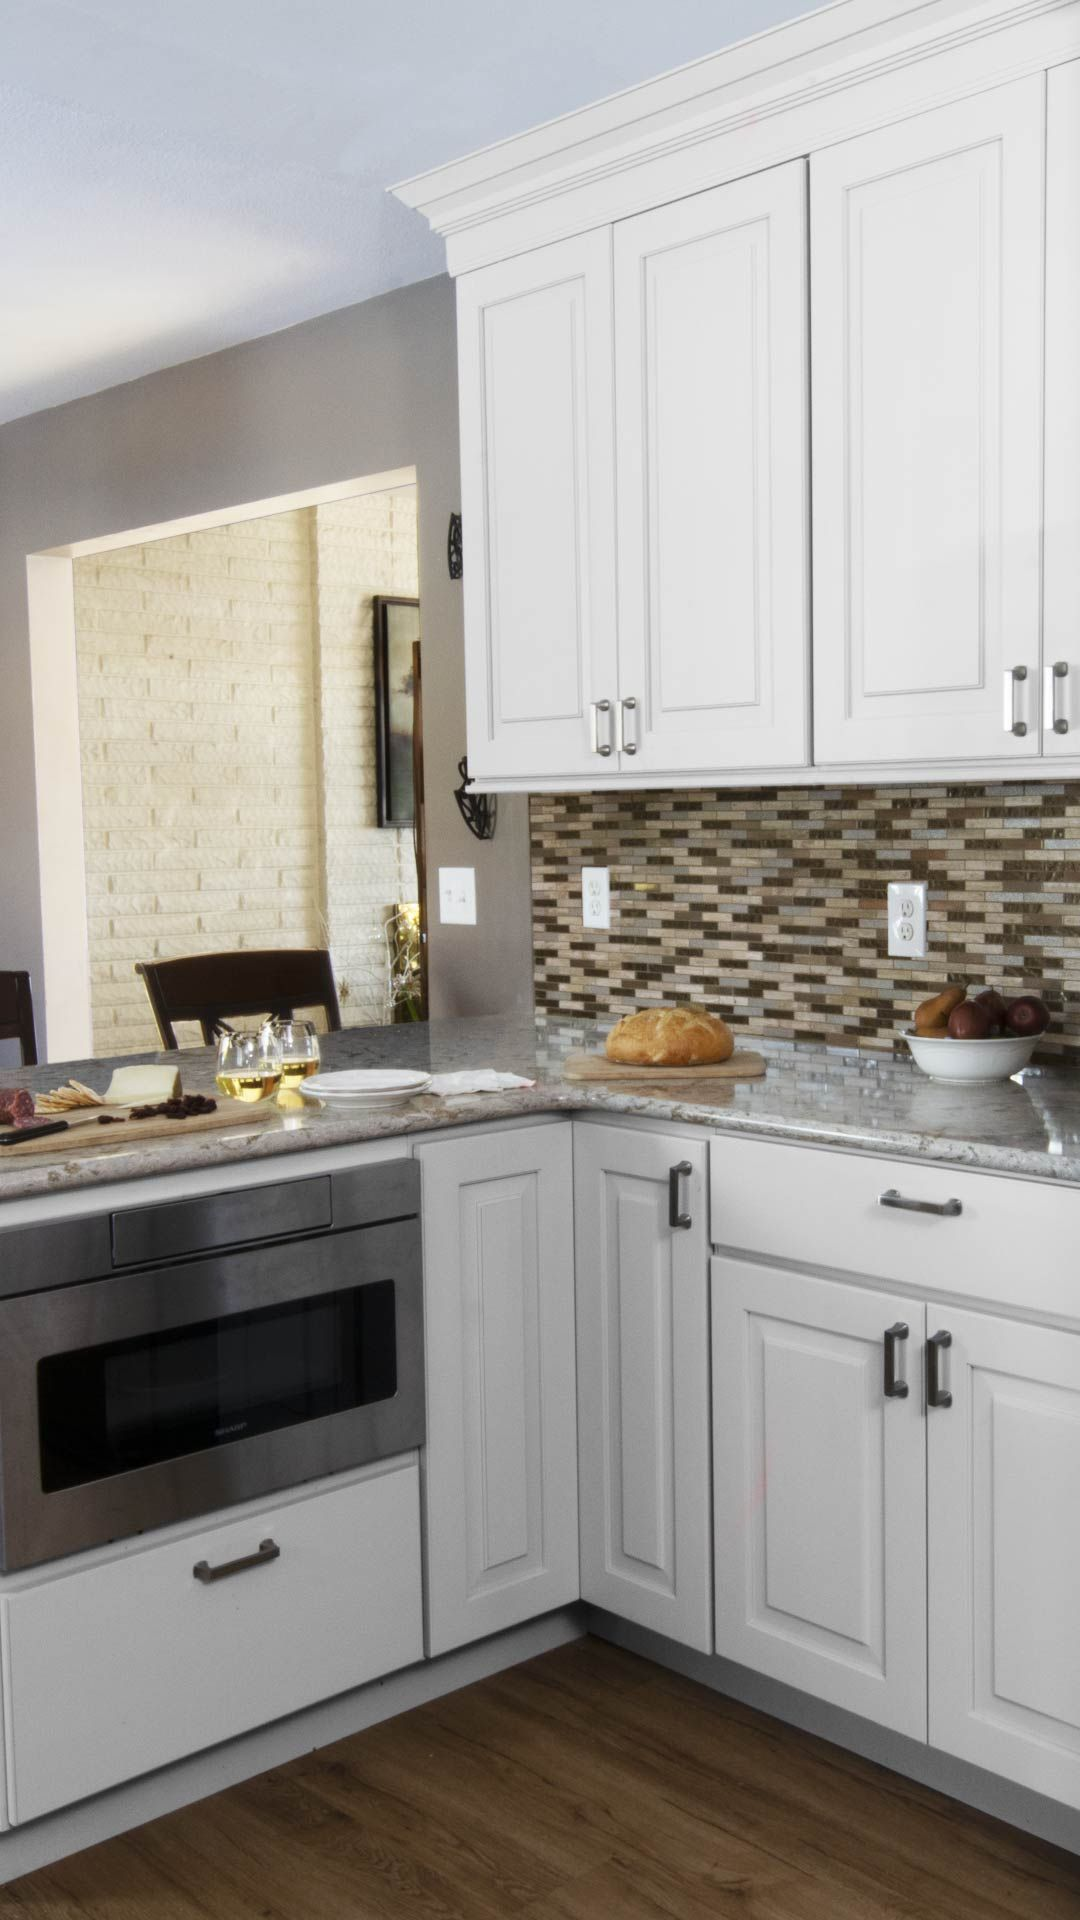 Fully Assembled Shipped Free Get Started Today Video Transitional Kitchen Design Kitchen Cabinet Layout Kitchen Cabinets